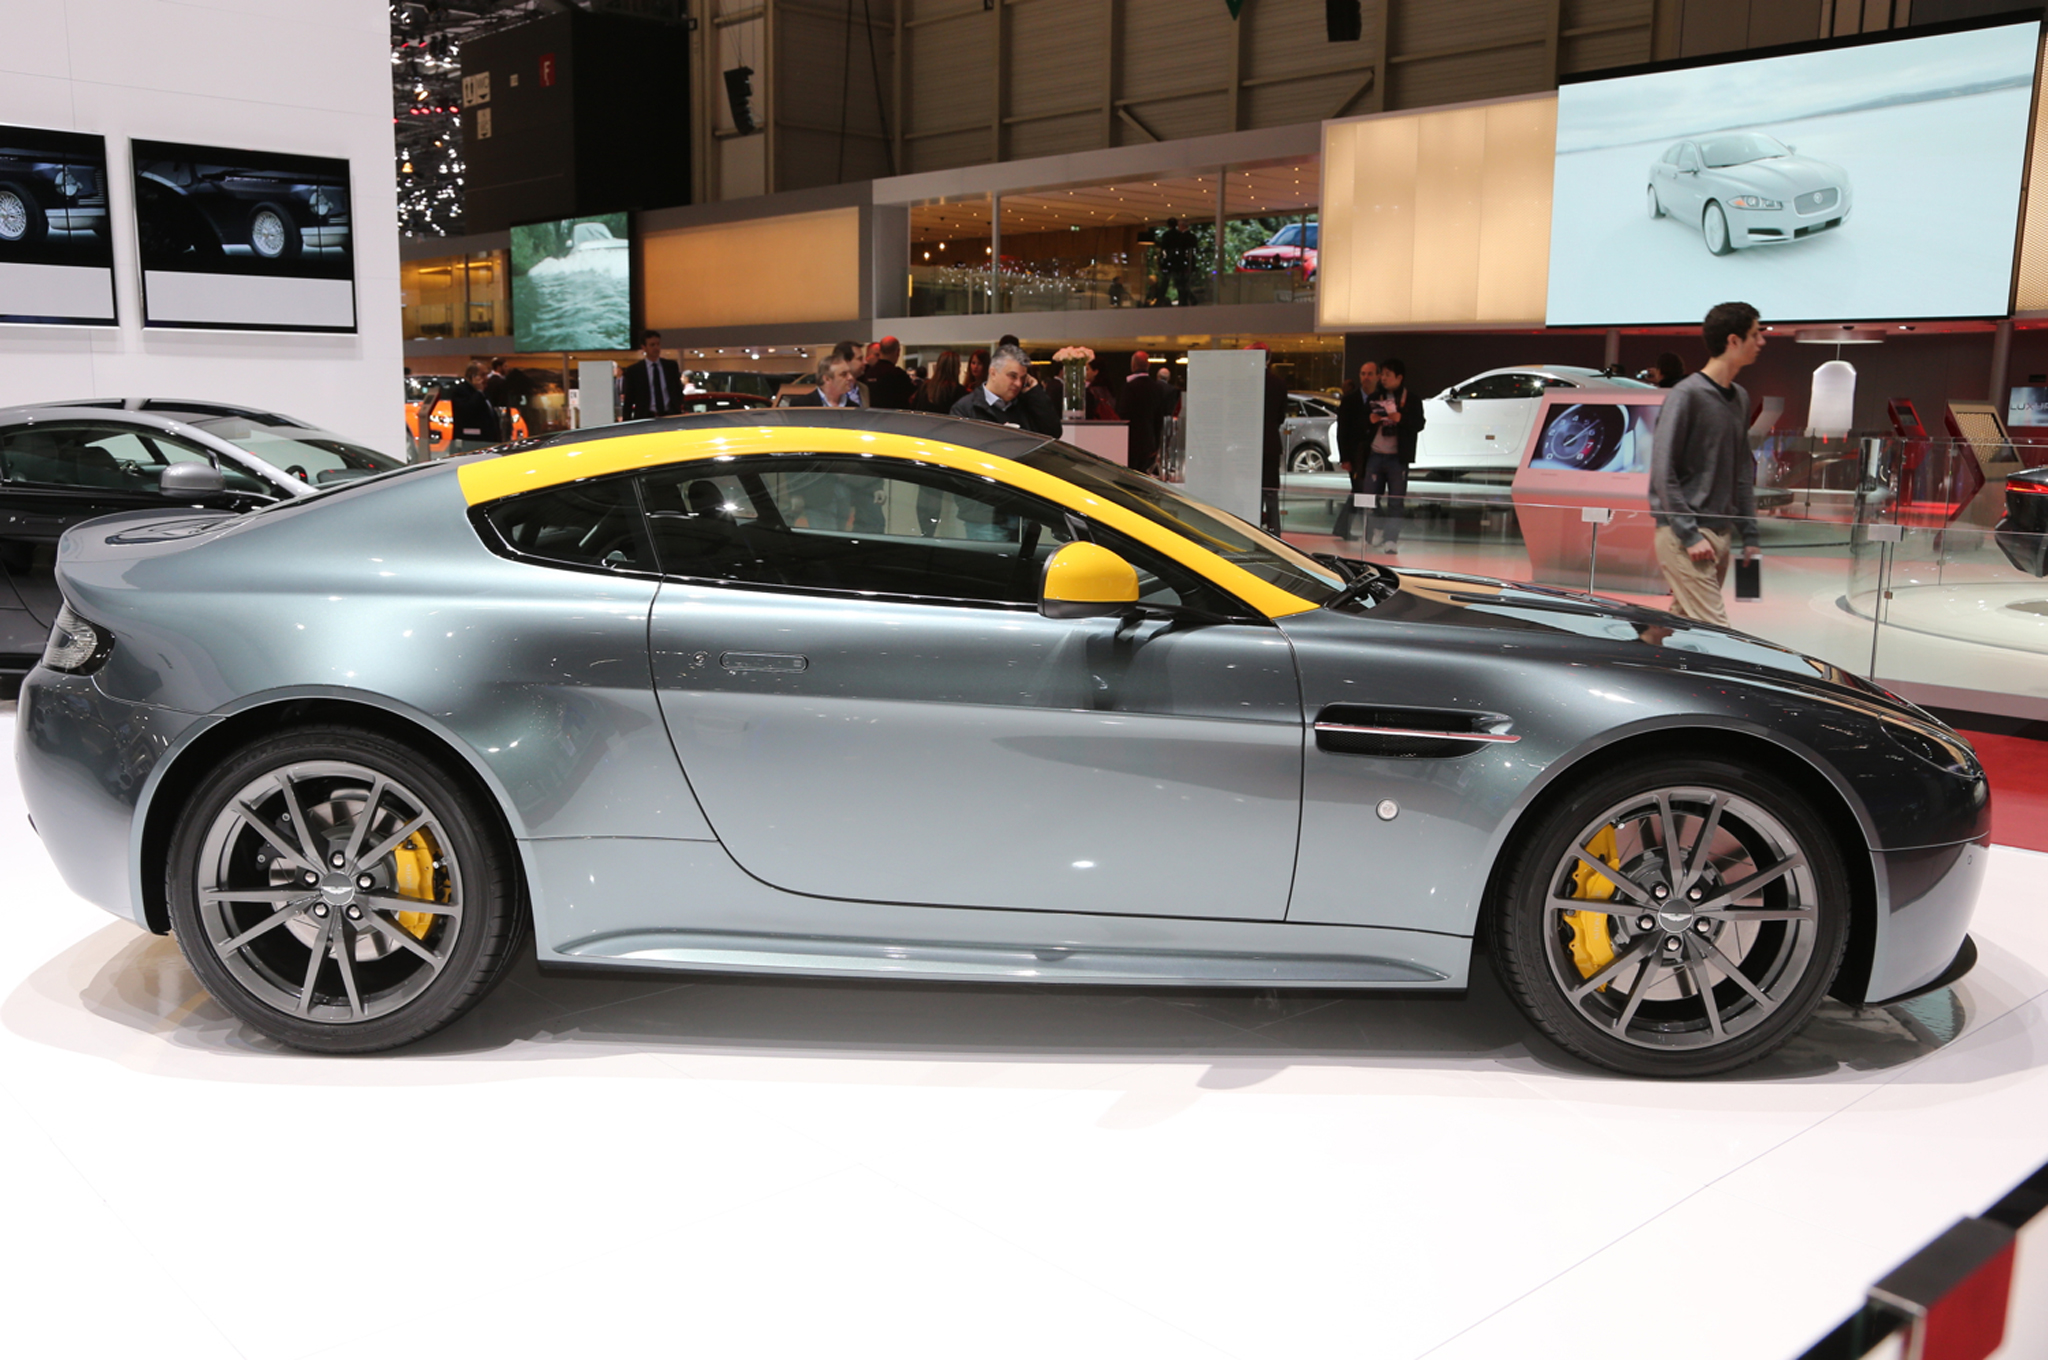 2015 Aston Martin V8 Vantage Gt Side View (View 3 of 7)